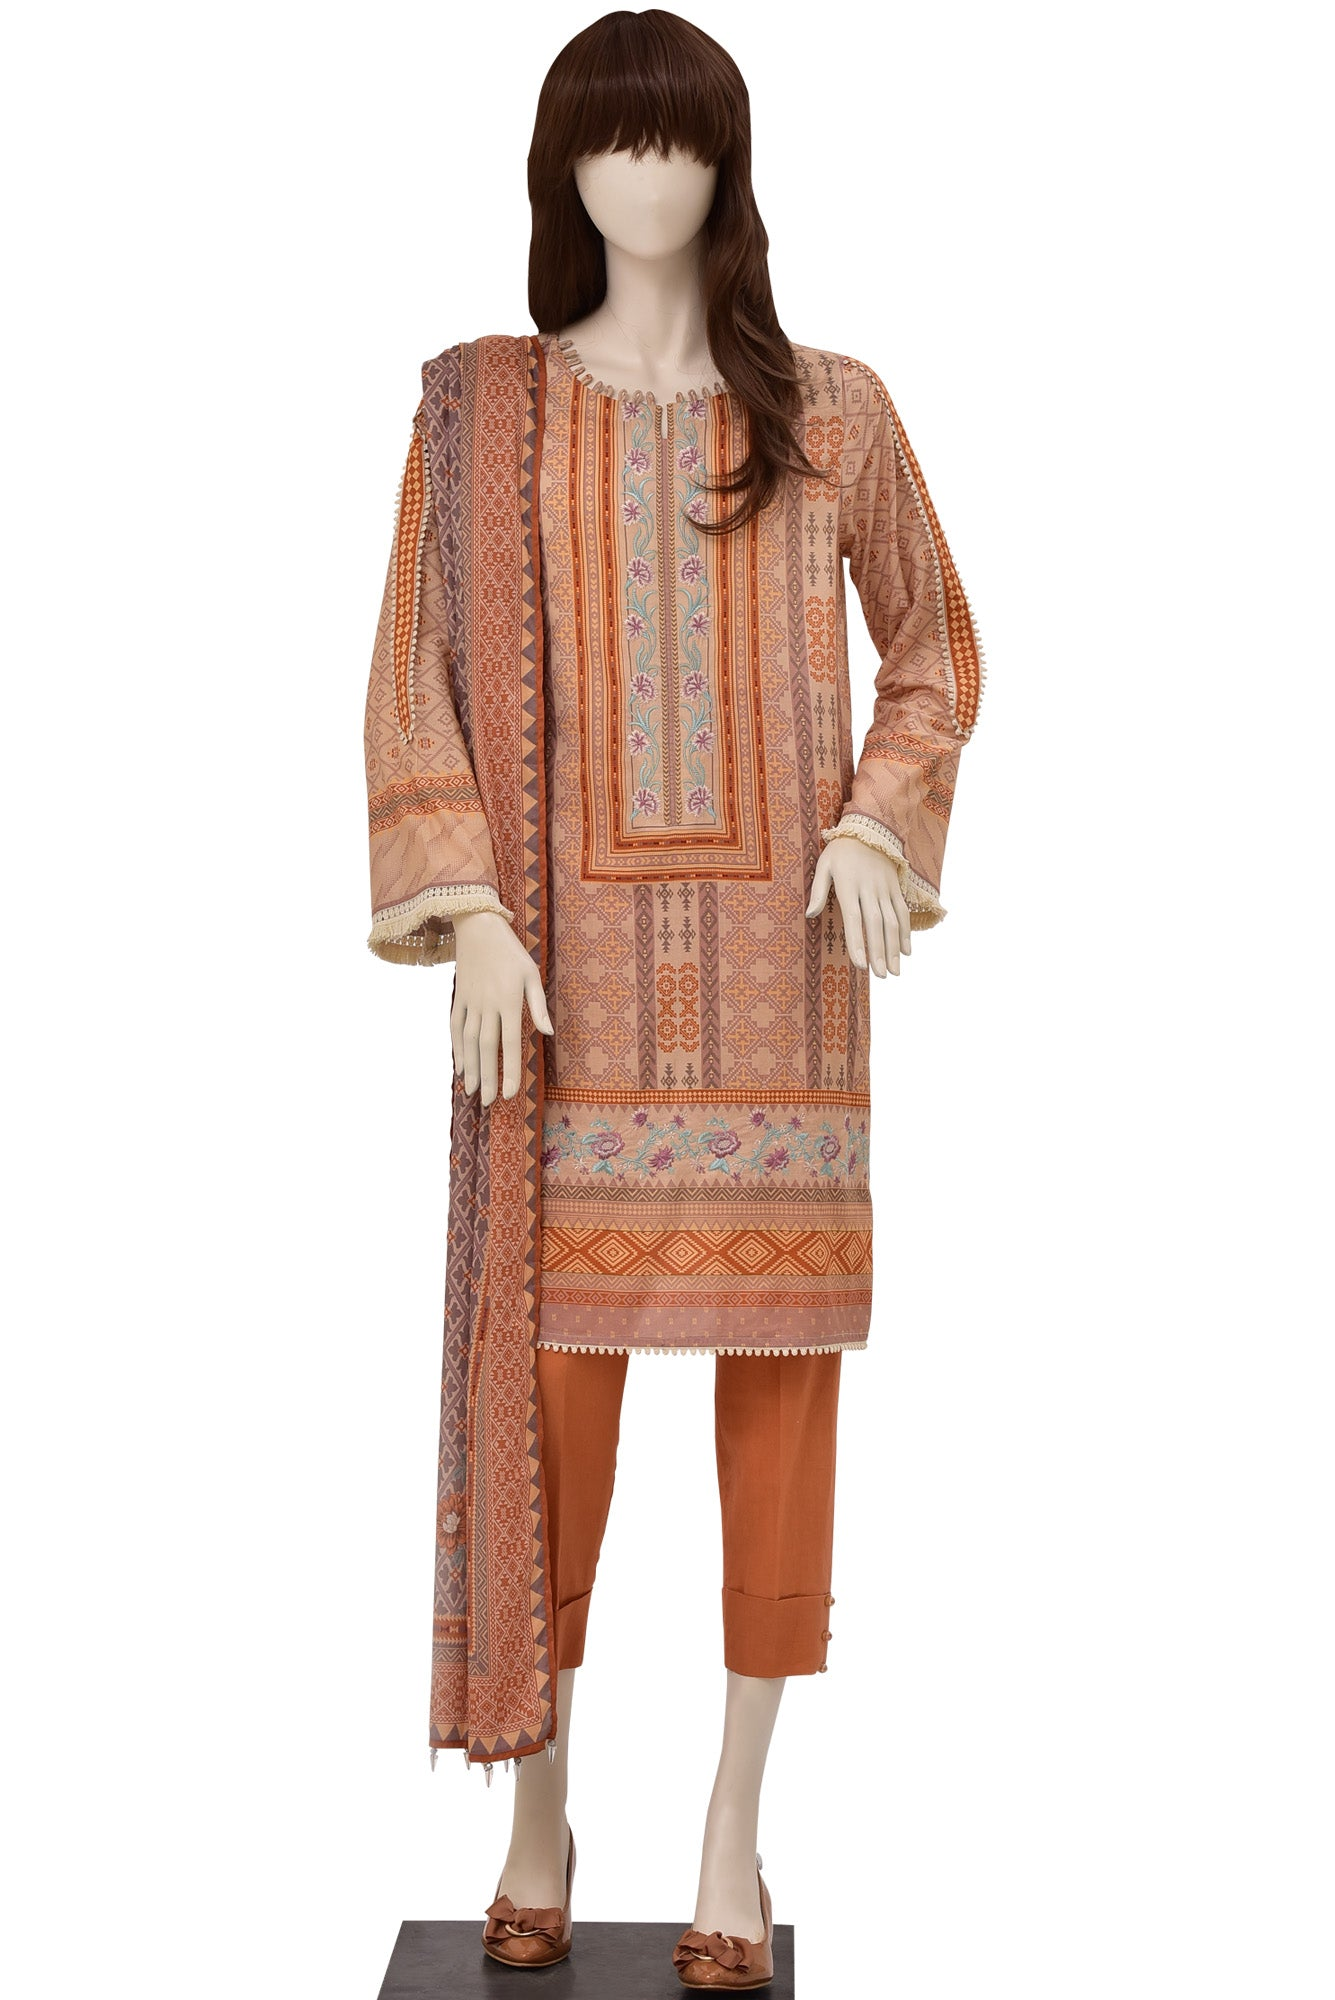 KILIM UP-1915-03D (SHIRT/DUPATTA) - Saya